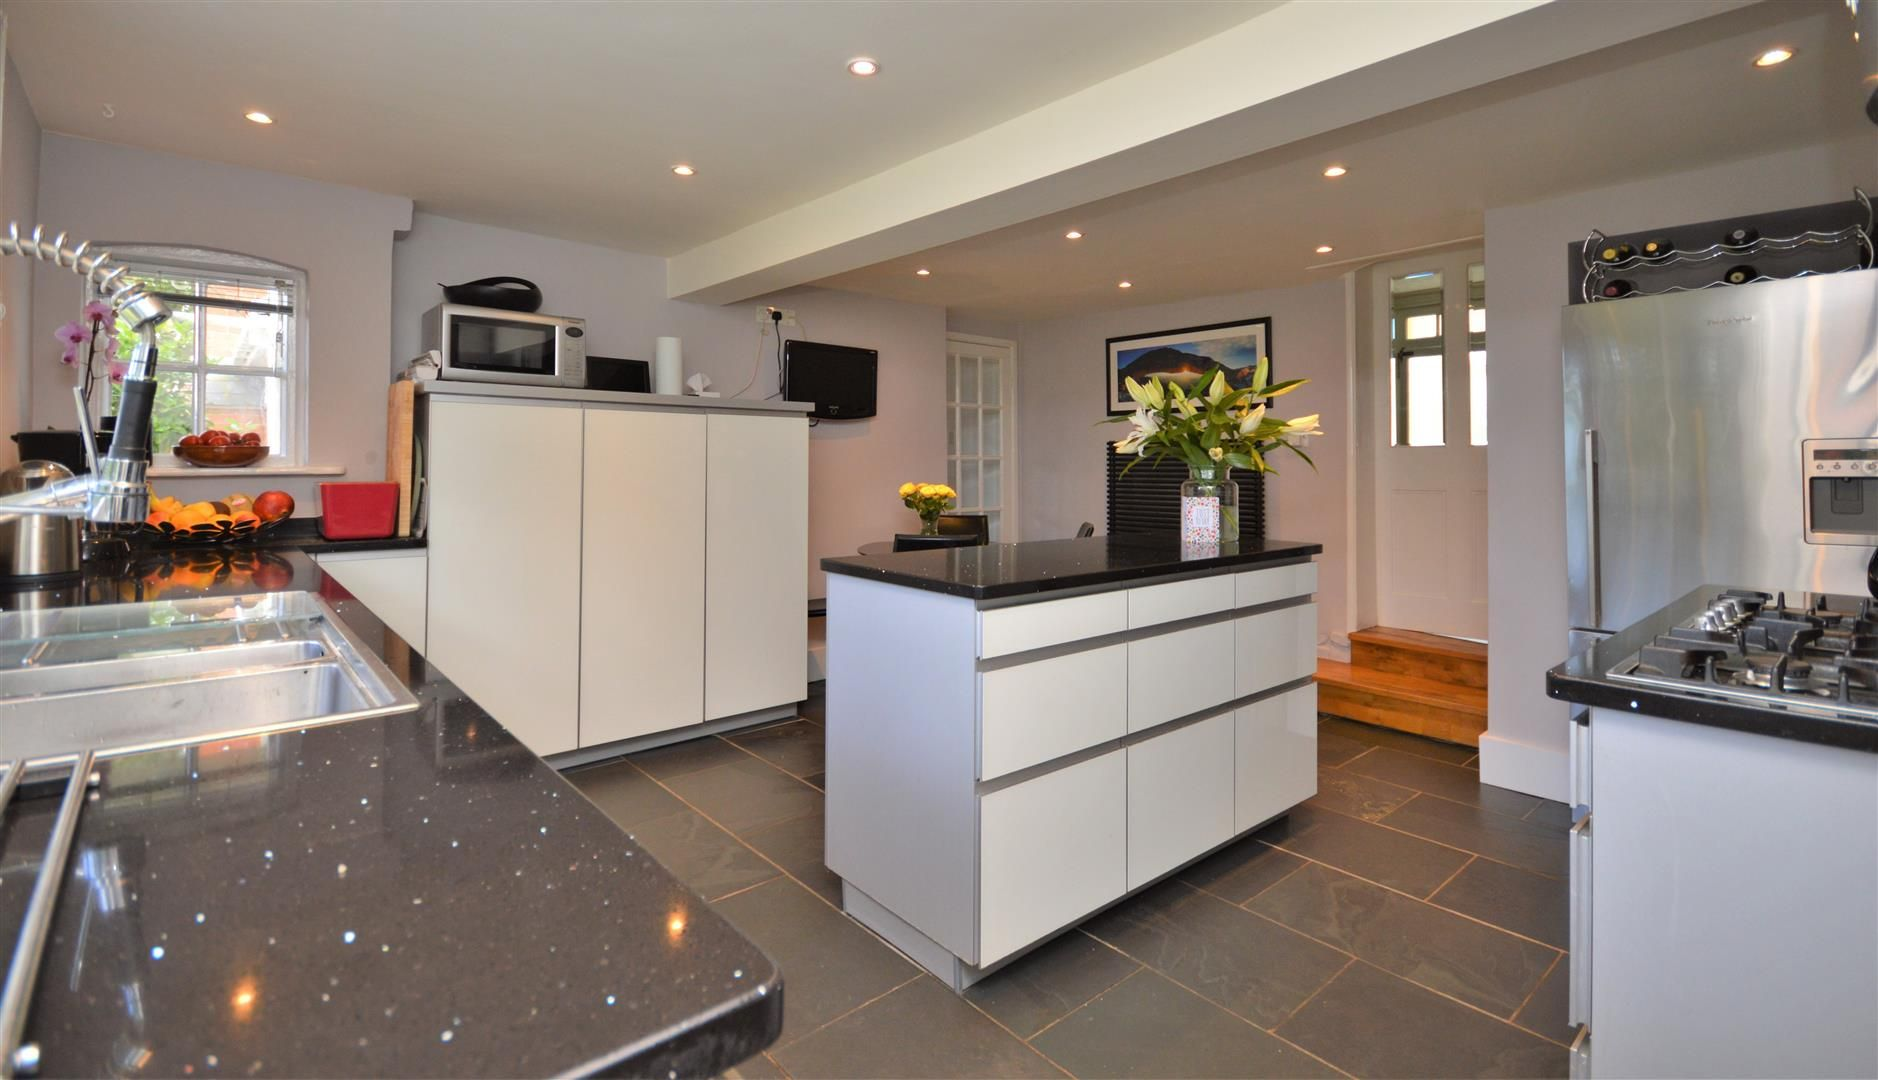 5 bed detached for sale in Stretton Sugwas 16